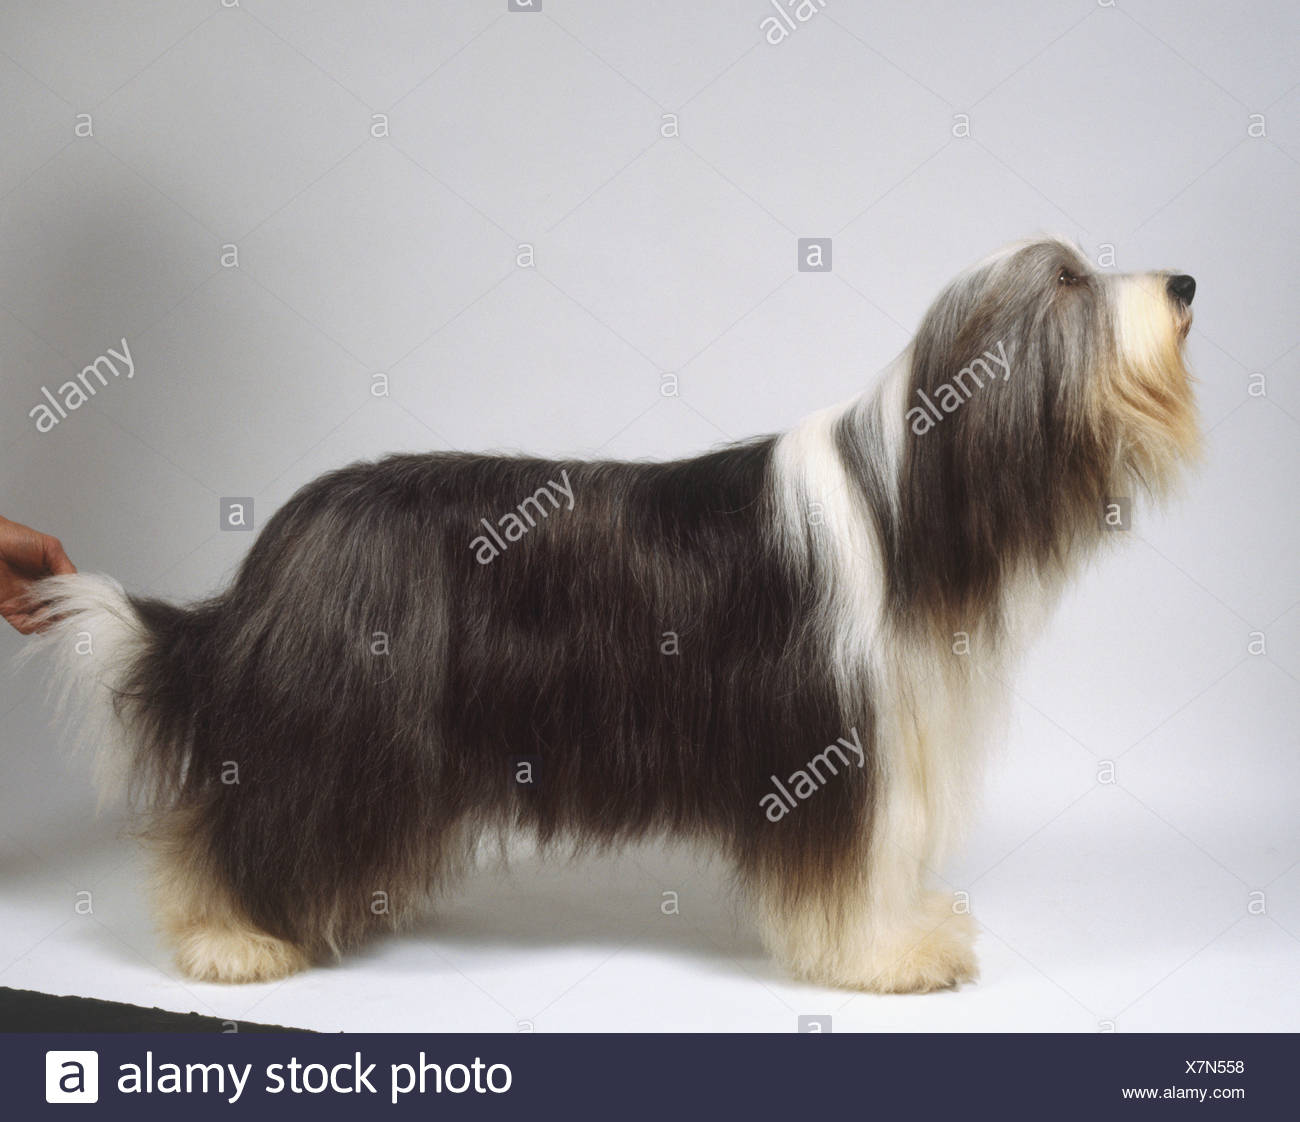 Long haired grey and white bearded collie standing side on. - Stock Image